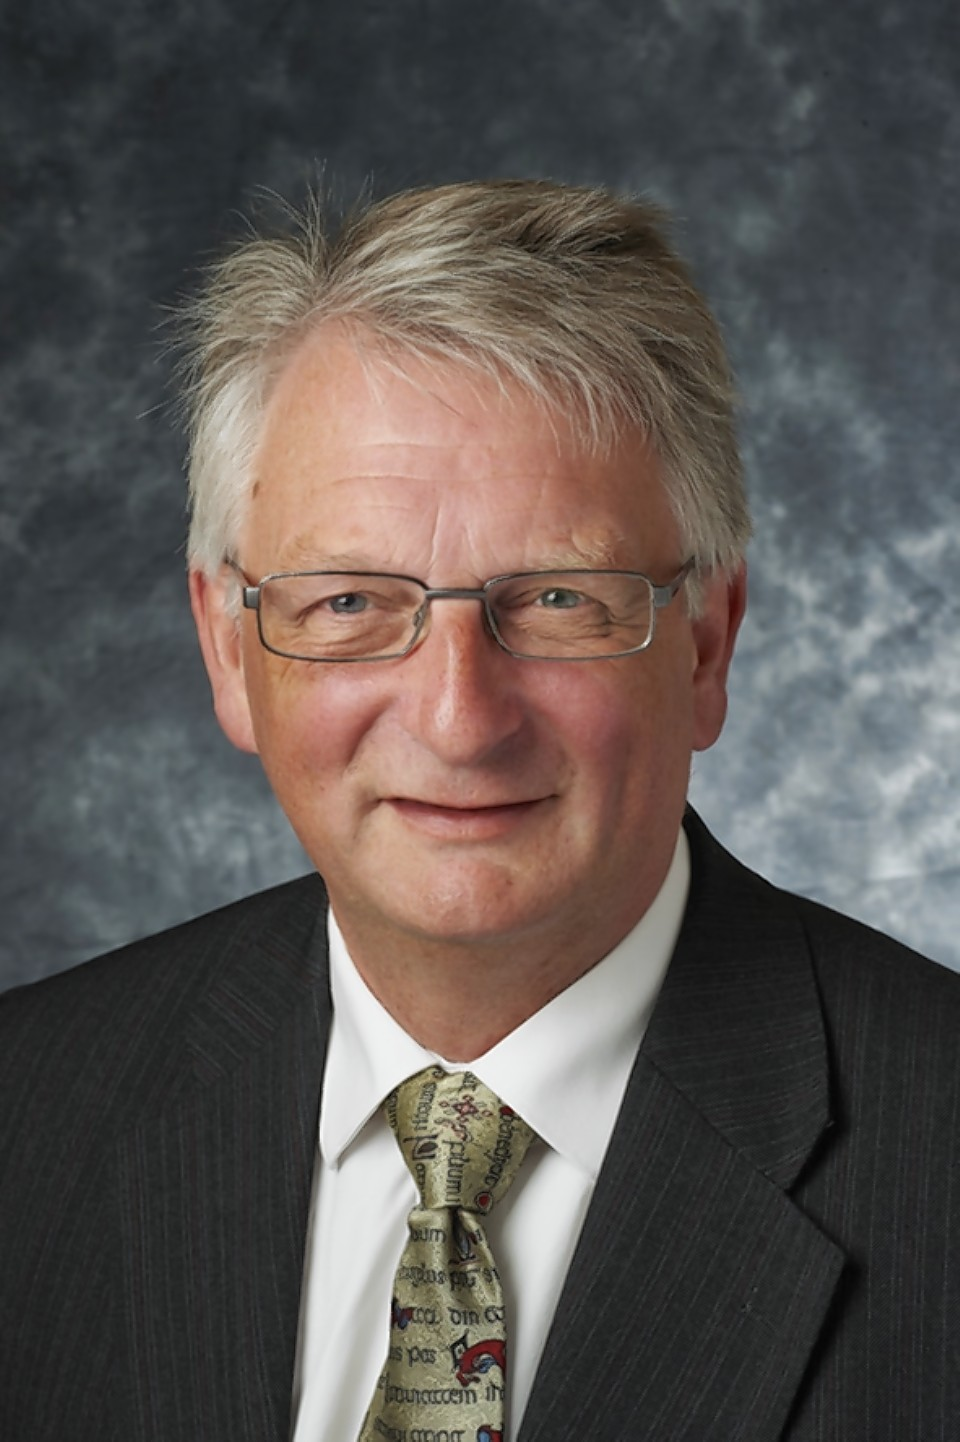 Highland Council deputy leader David Alston has accused the justice secretary of misrepresenting role of Northern Police Board in introduction of armed police on the streets.